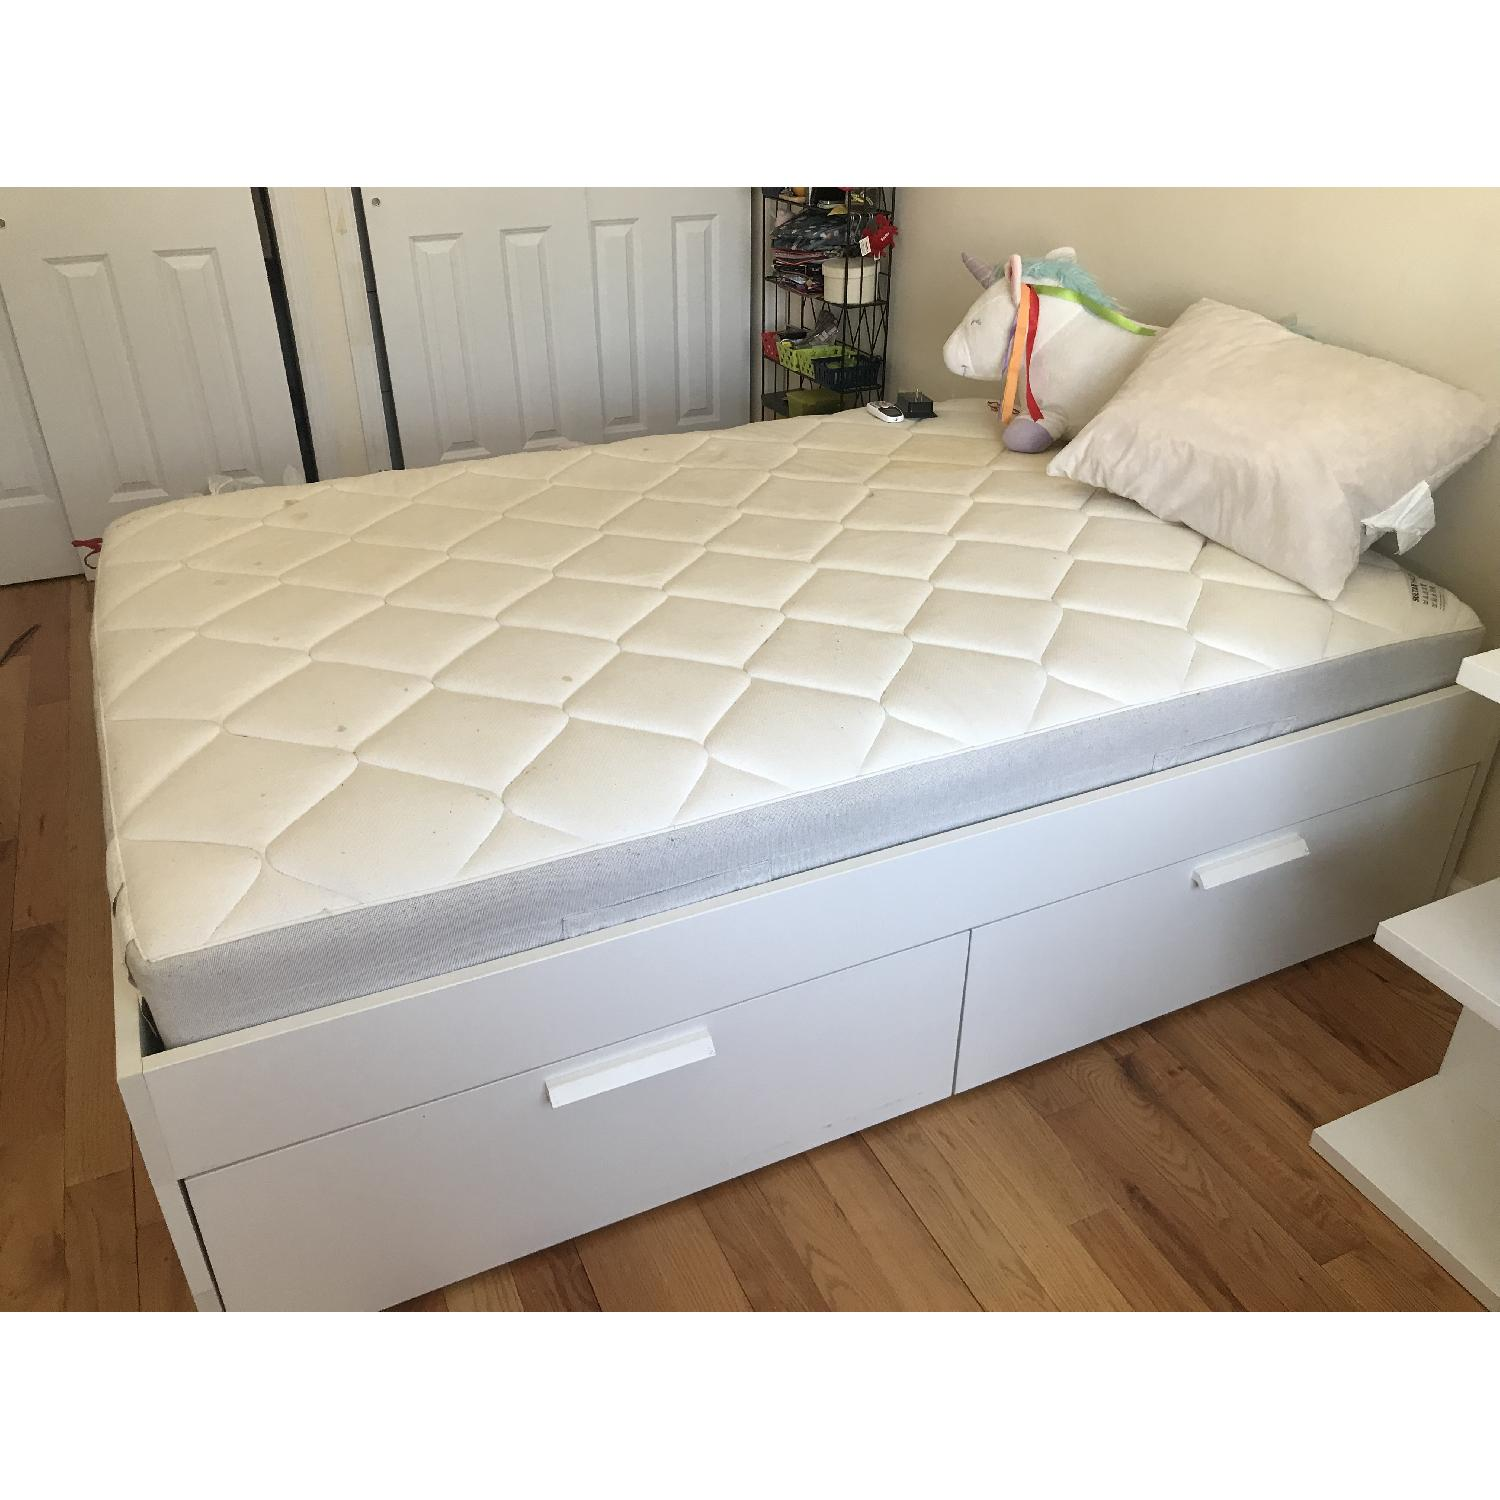 Ikea Full Size Bed Frame Ikea Brimnes Full Size Bed Frame W Storage